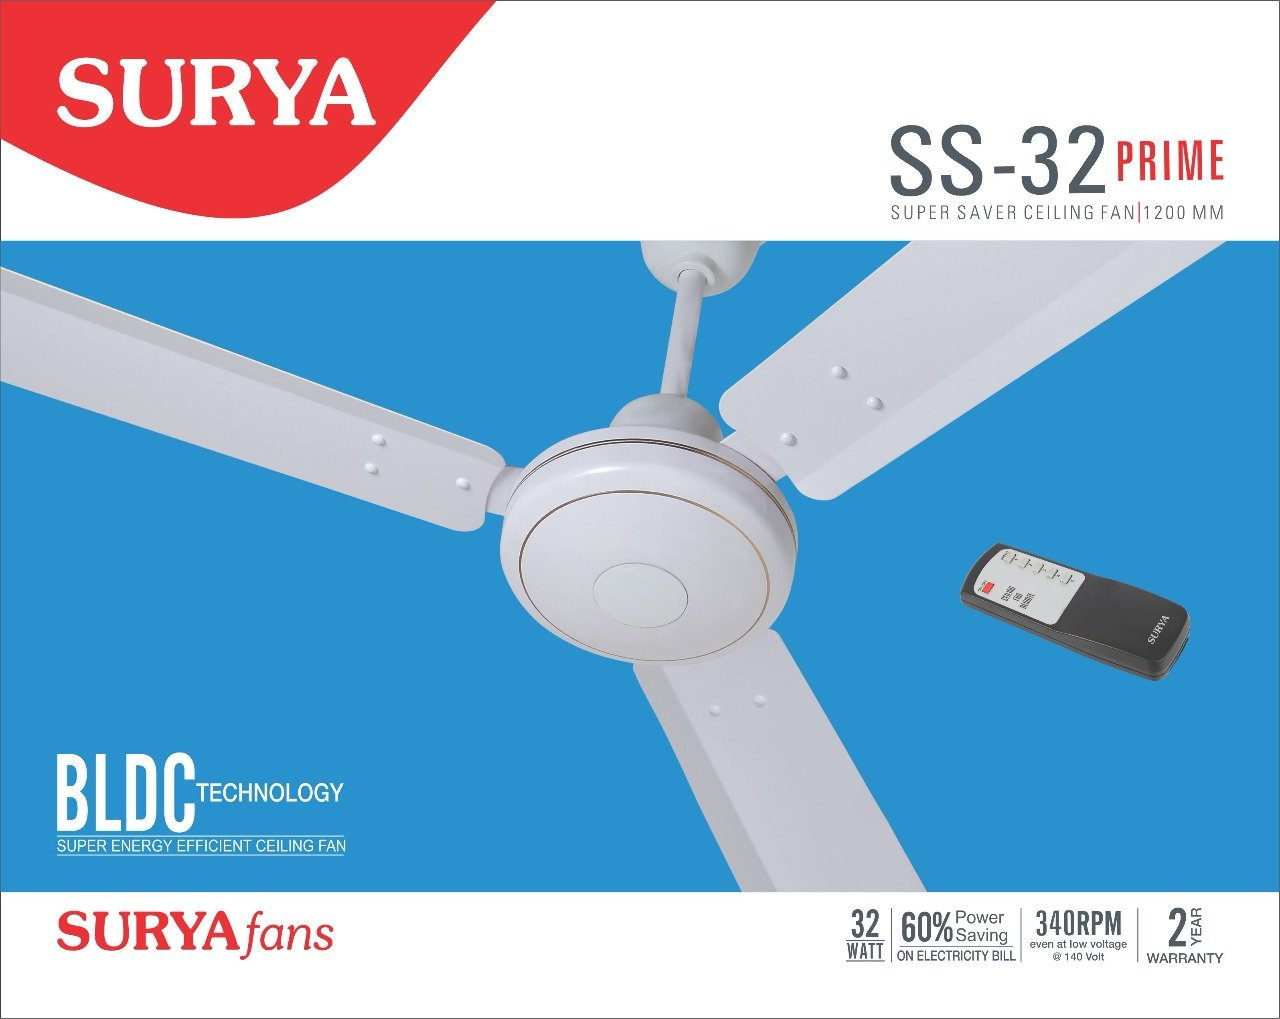 Surya SS-32 Prime White BLDC Ceiling Fan